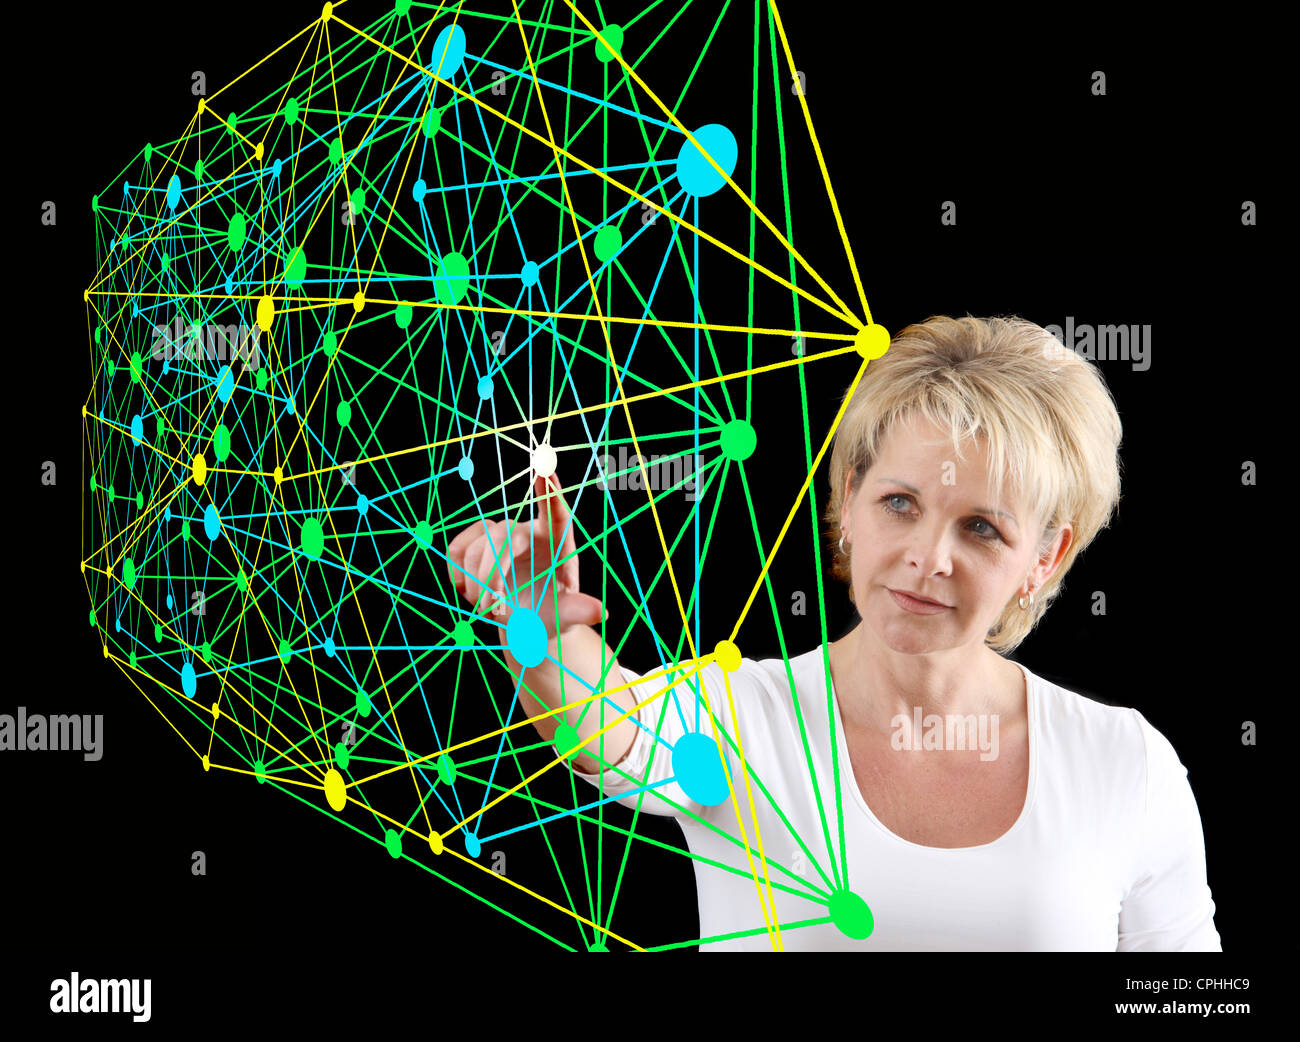 Symbolic image, networking, network, Internet networking, social media, connections, virtual space, communications. - Stock Image